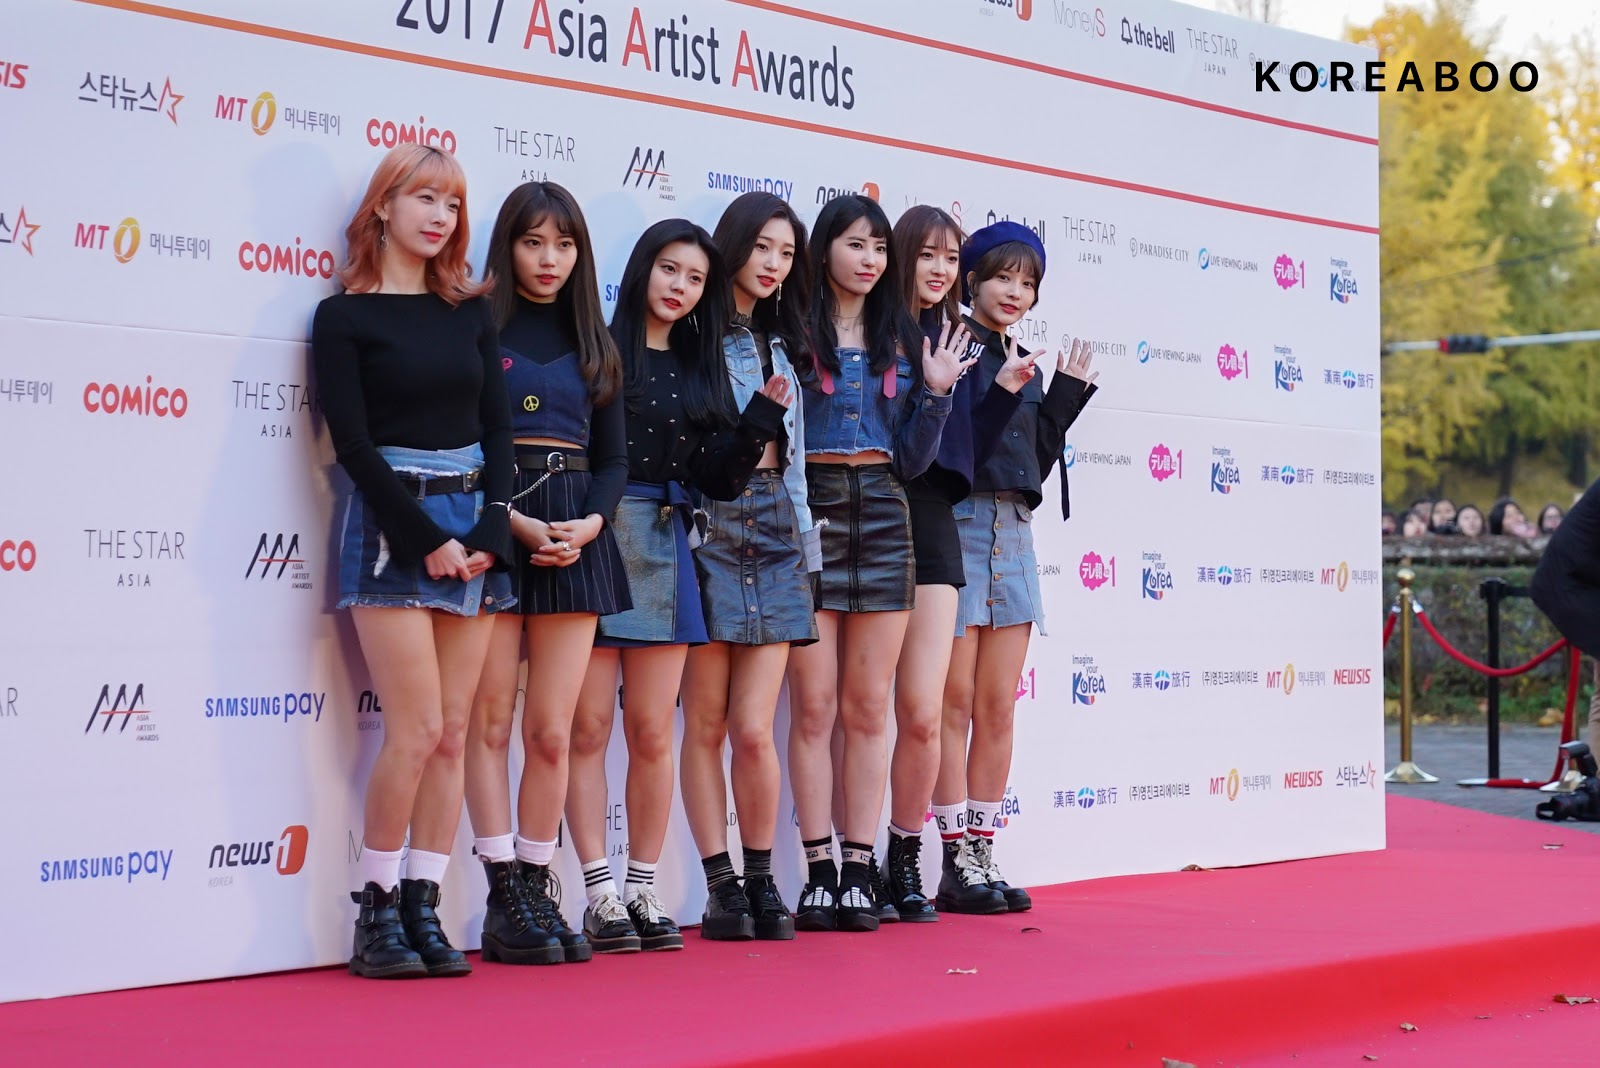 Ranking Of The Best Dressed Idols At The 2017 Asian Artist Award Red